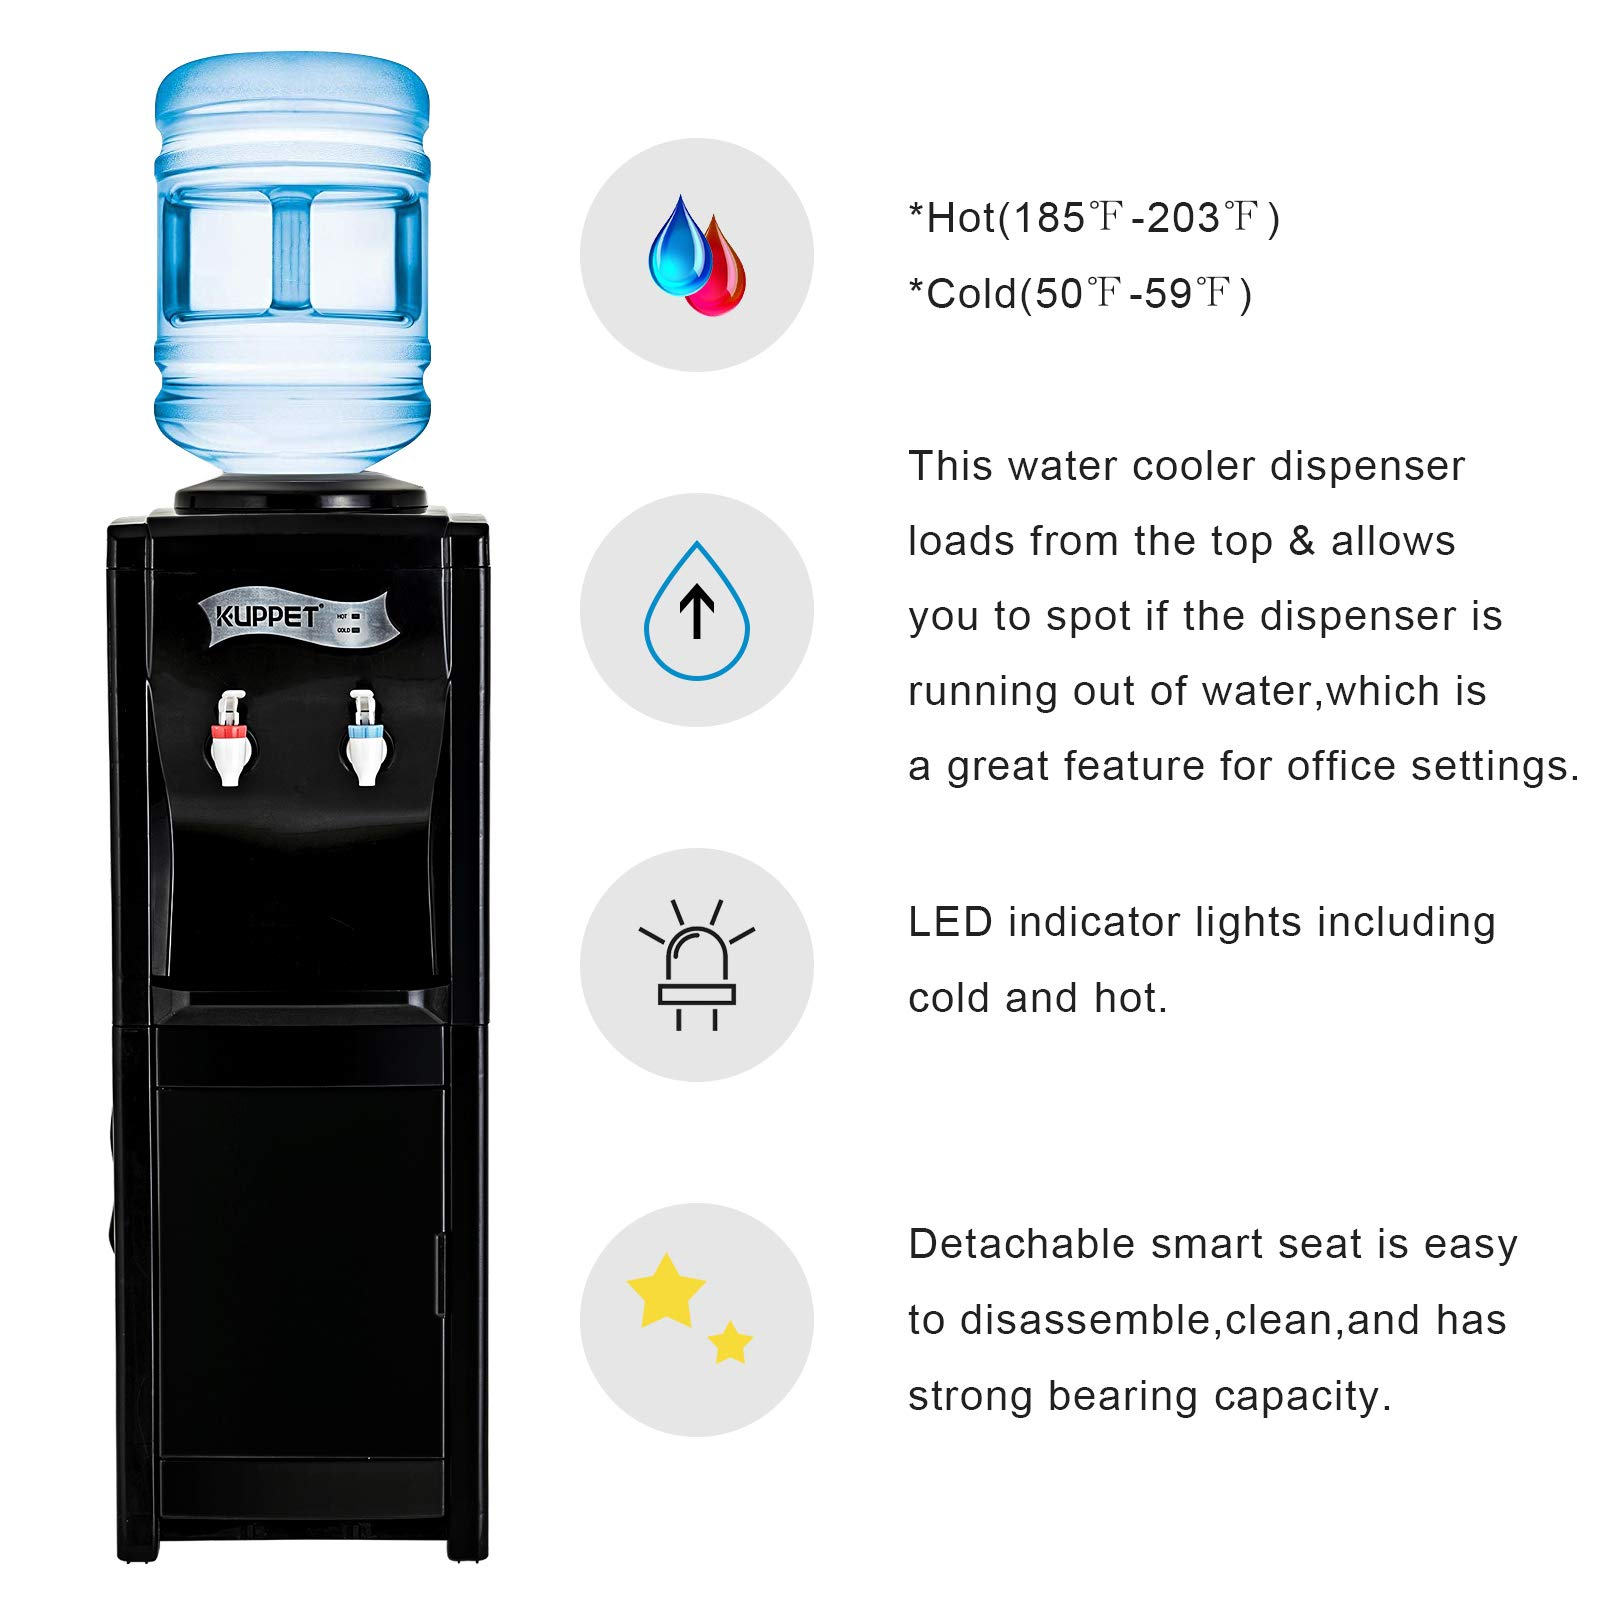 KUPPET Water Cooler Dispenser-Top Loading Freestanding Water Dispenser with Storage Cabinet, 5 Gallon, Two Temperature Settings-Hot(185℉-203℉), Normal Temperature(50℉-59℉), BLACK(32'', Black) by KUPPET (Image #3)